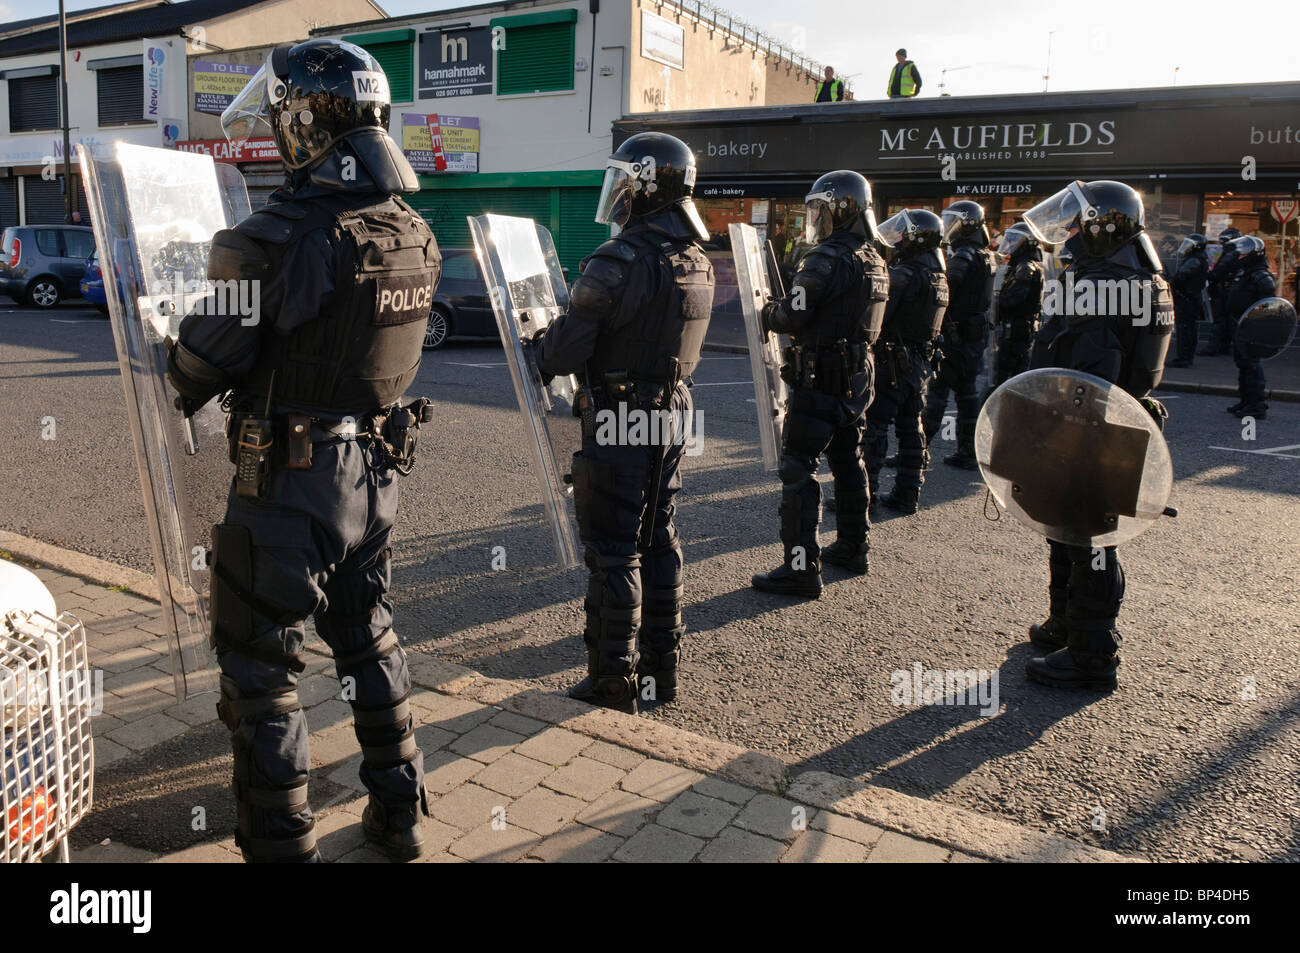 Police riot squad line up across a road in preparation for civil disturbance - Stock Image